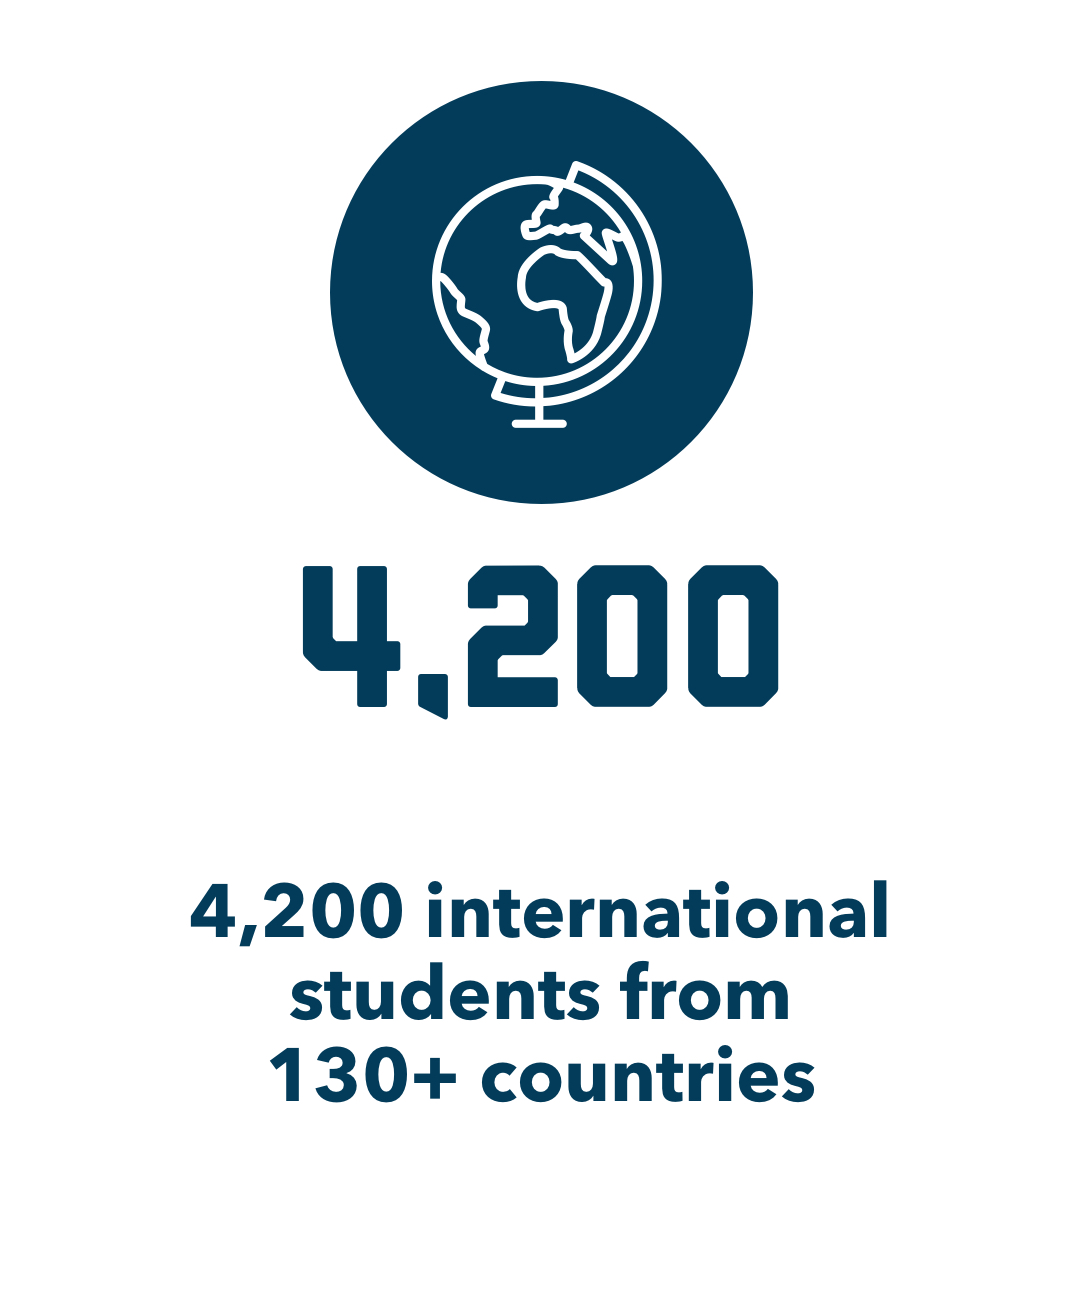 4,200 international students from 130+ countries